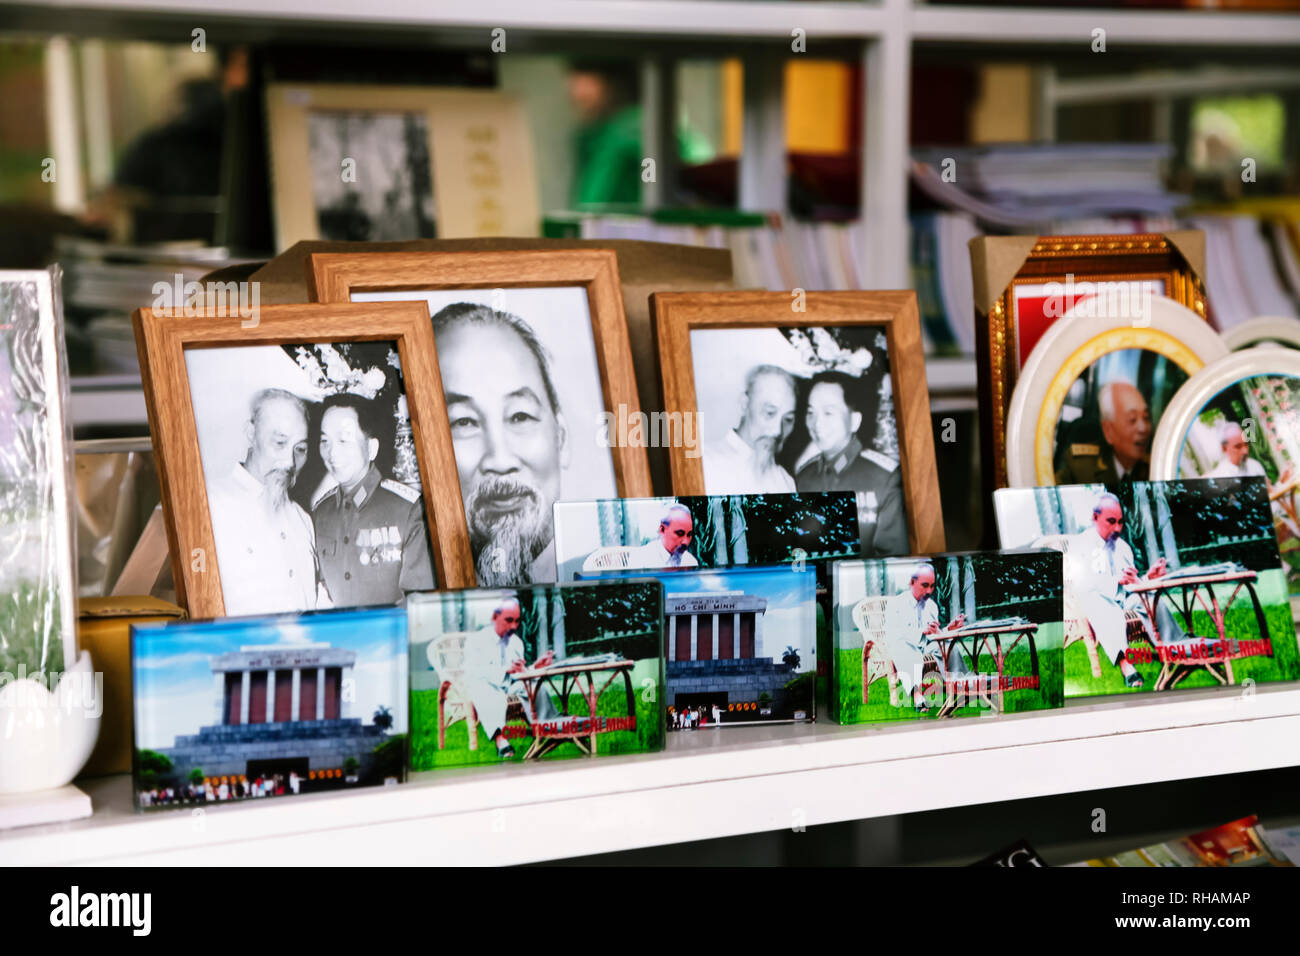 Hanoi, VIETNAM - JANUARY 12, 2015 - Souvenir photos of Ho Chi Minh - Stock Image